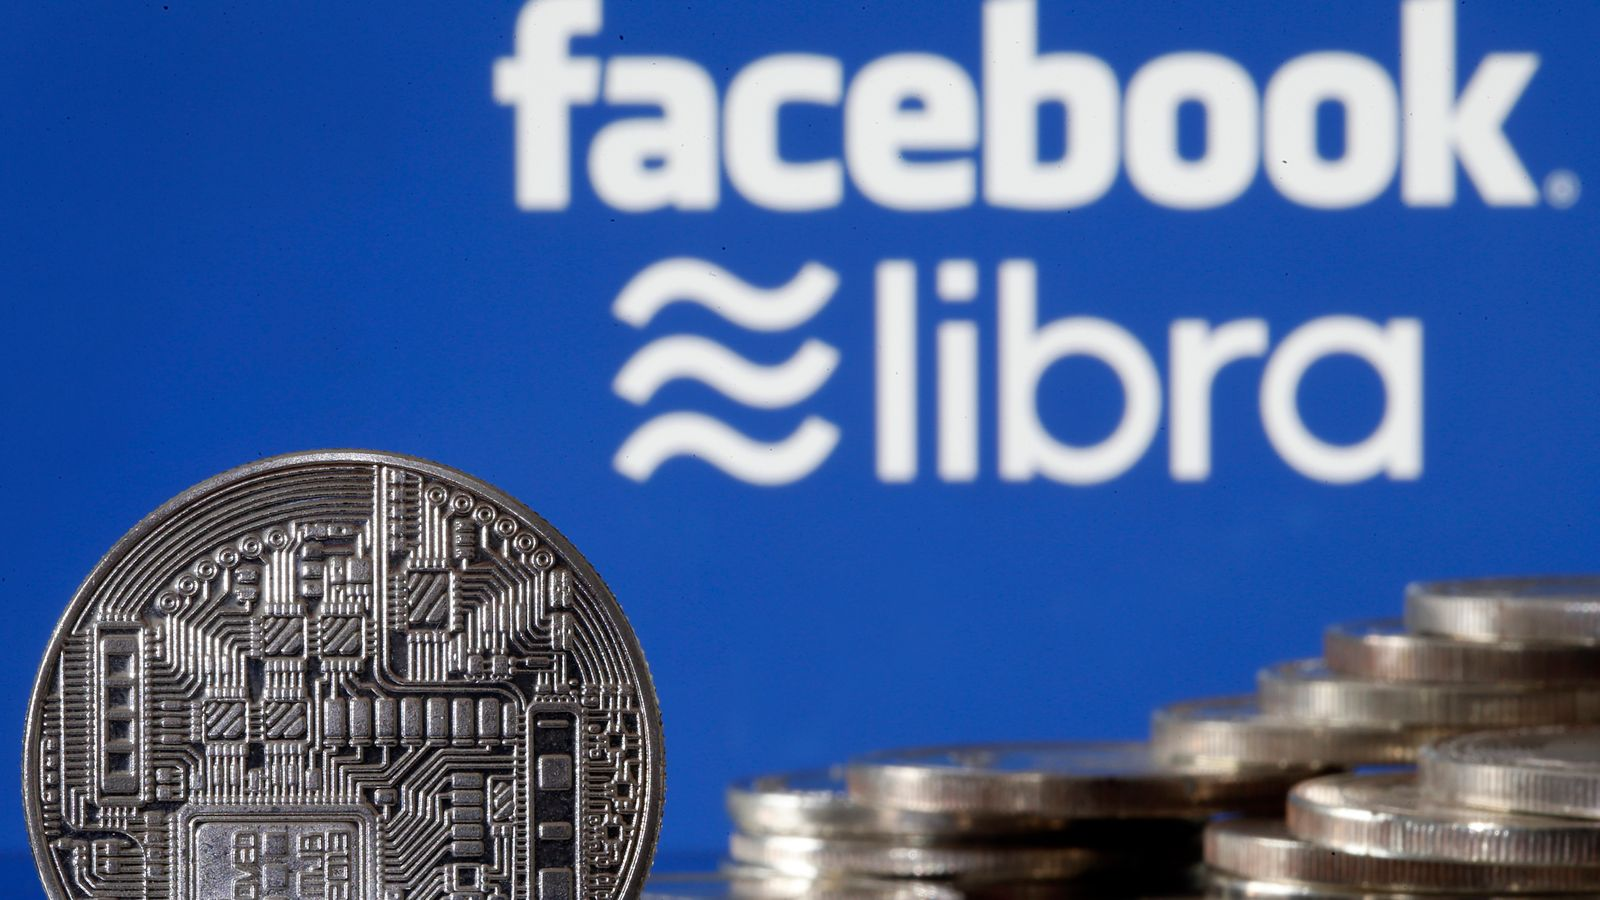 PayPal pulls out of Facebook's global digital currency group